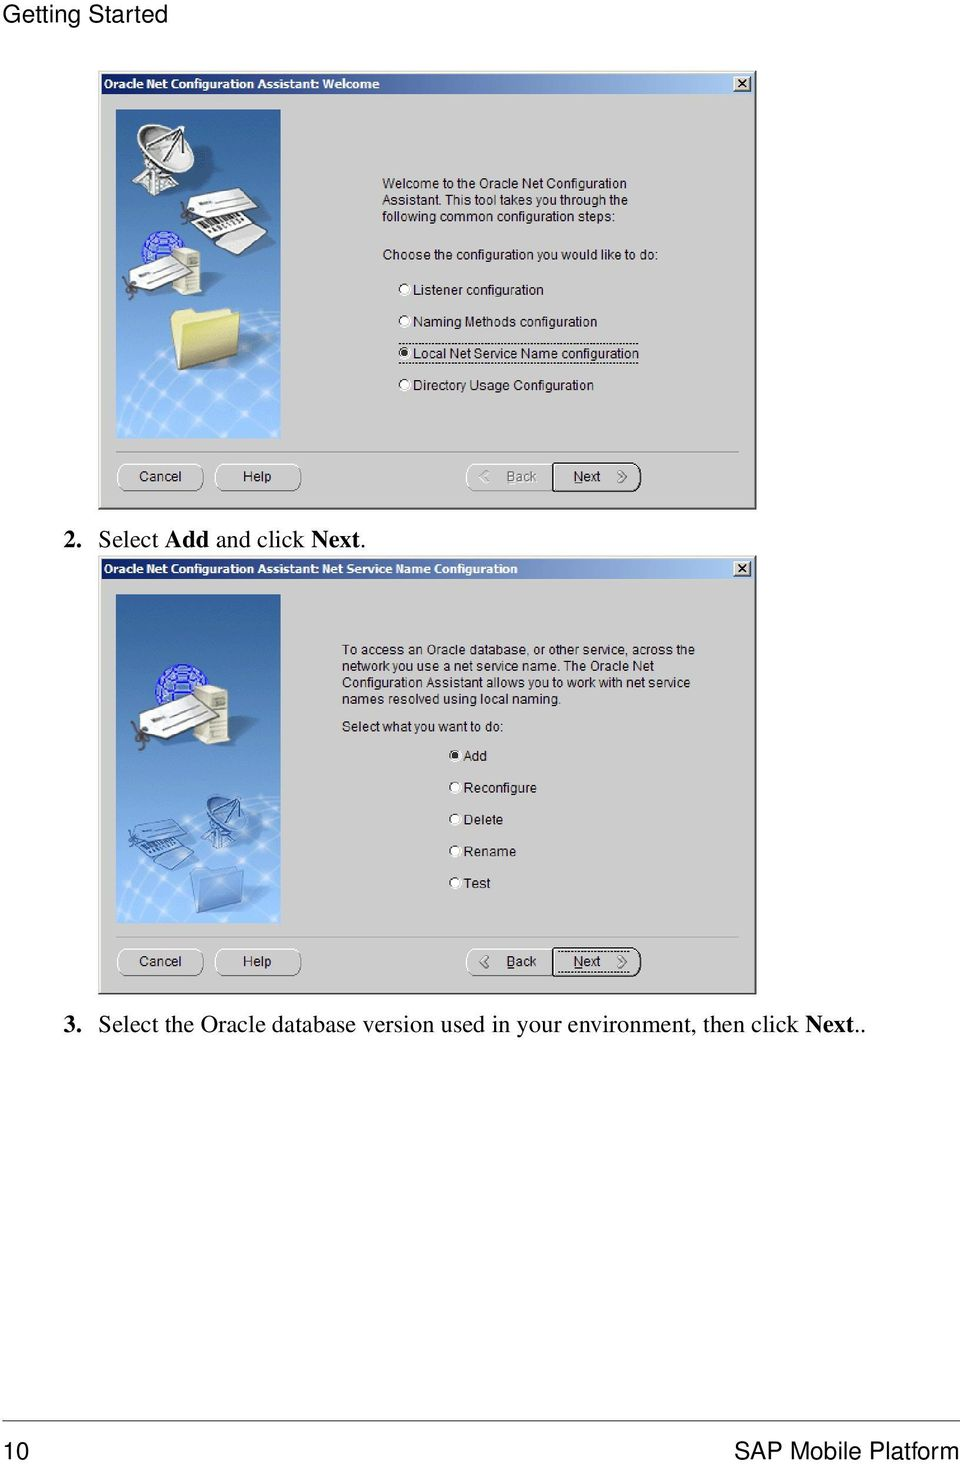 Select the Oracle database version